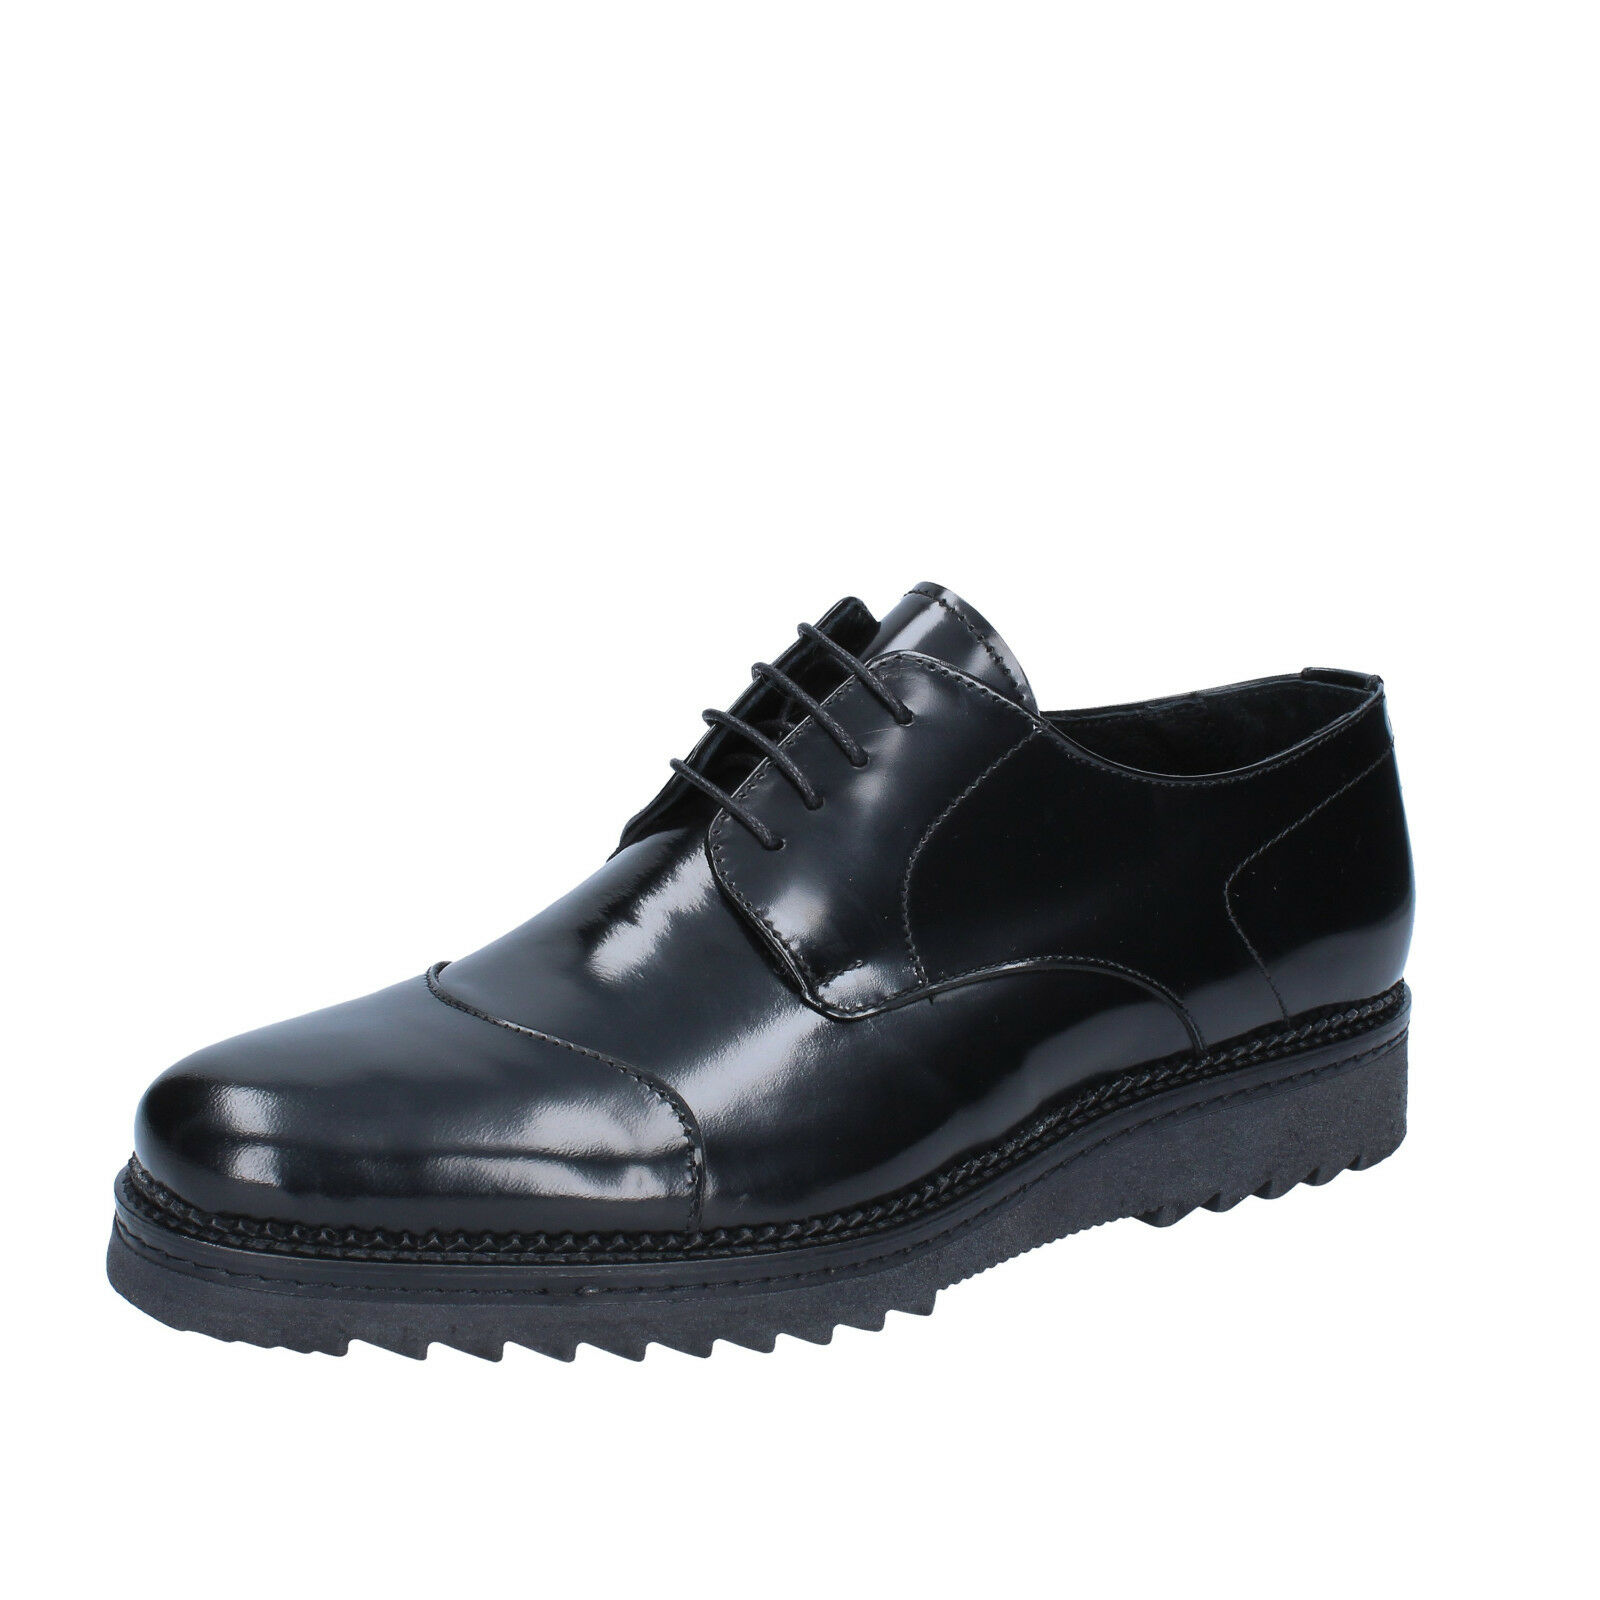 Men's shoes SALVO BARONE 11 (EU 44) elegant black shiny leather BZ171-44